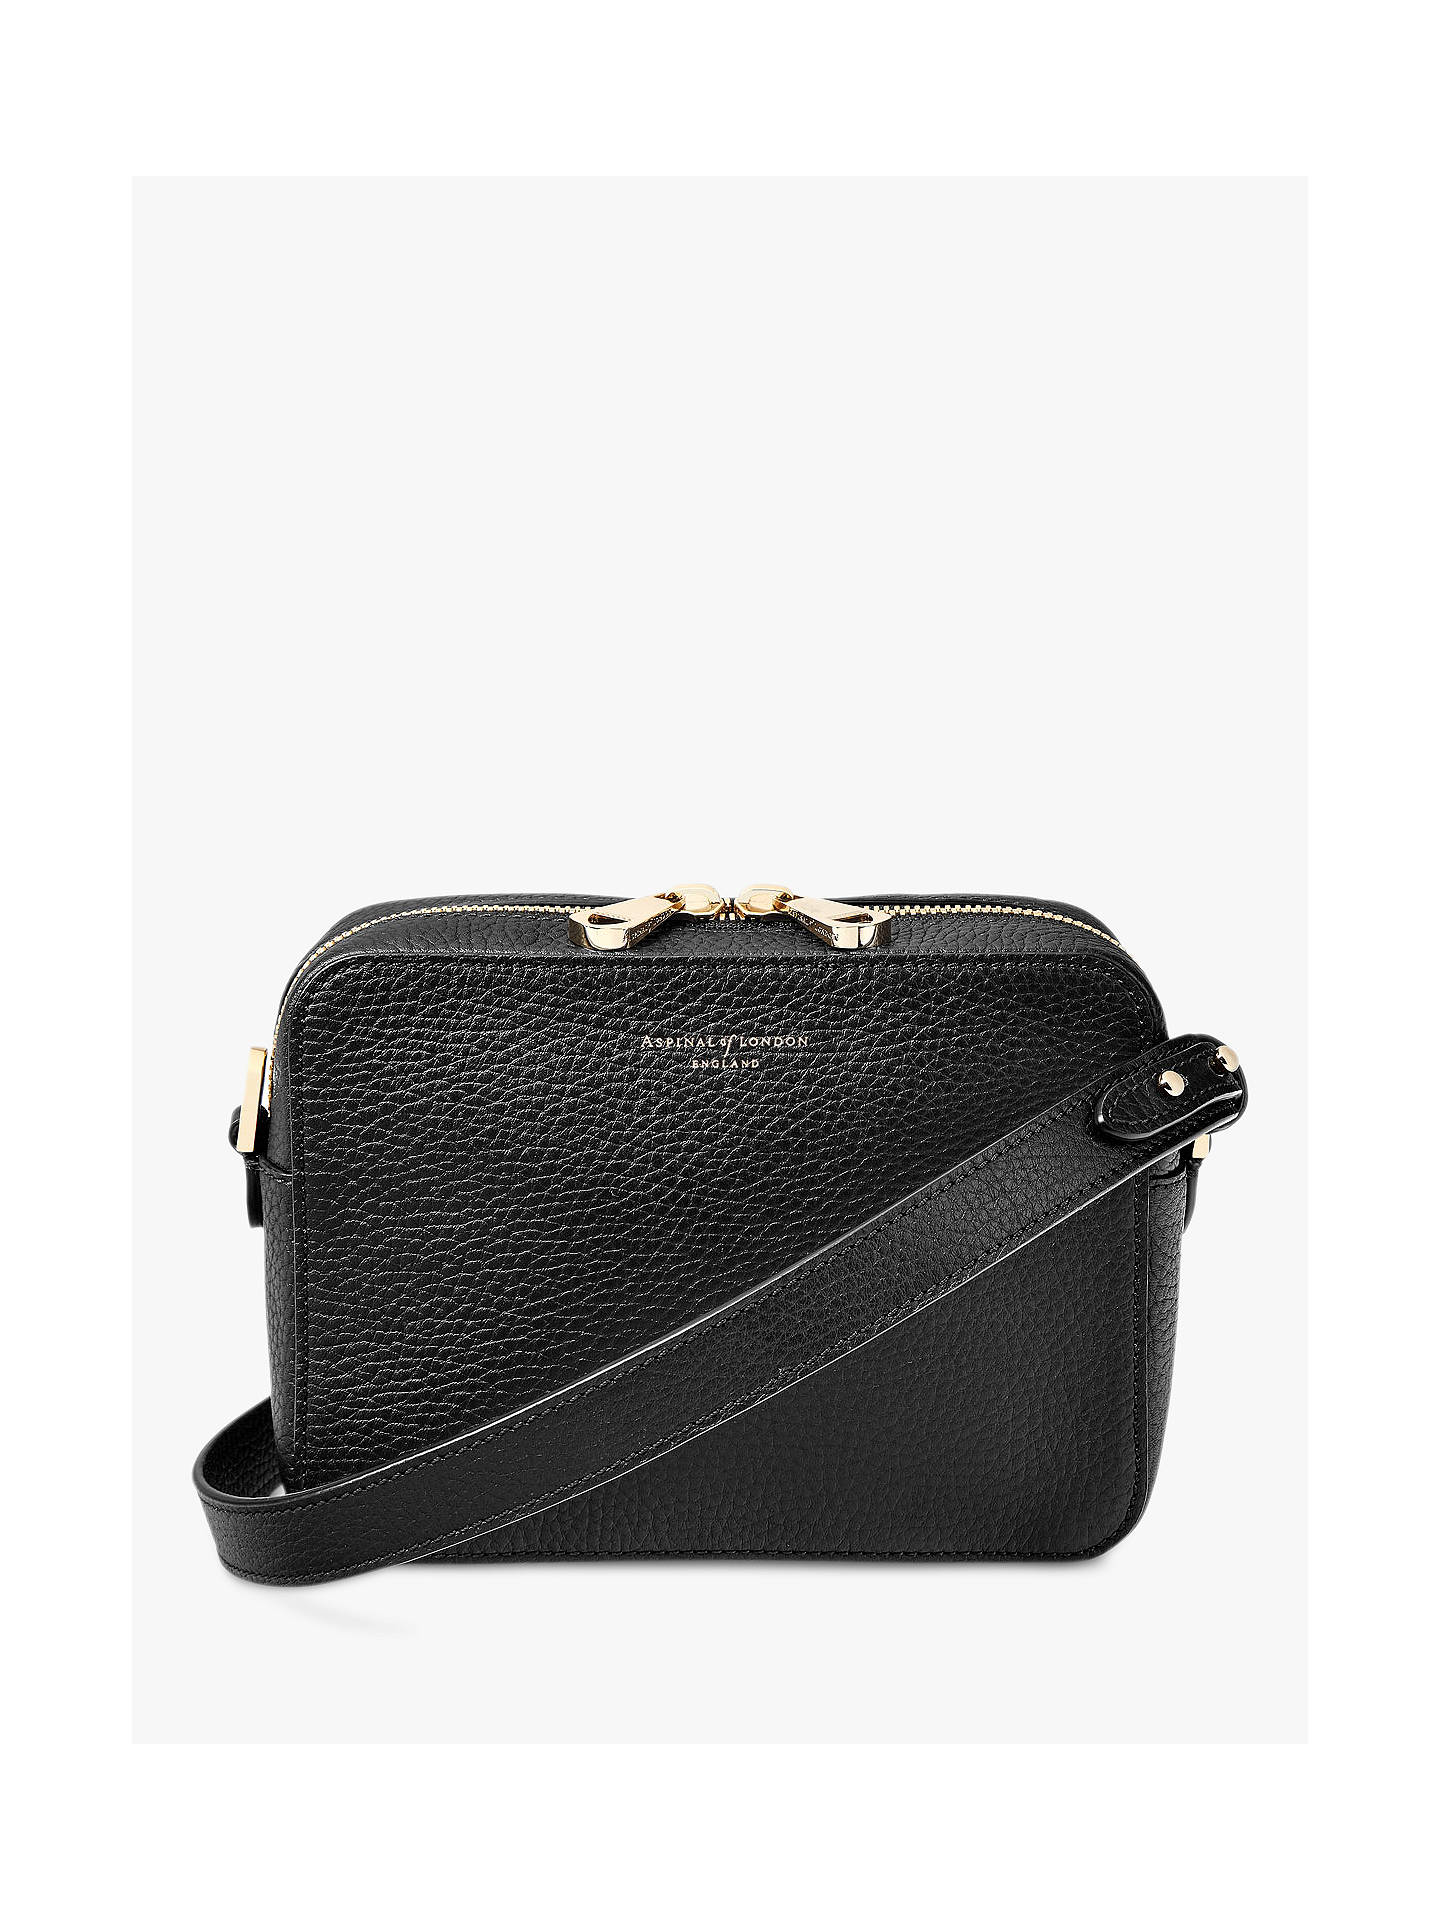 fa21564dd1ac Aspinal of London Blogger Leather Cross Body Bag at John Lewis ...